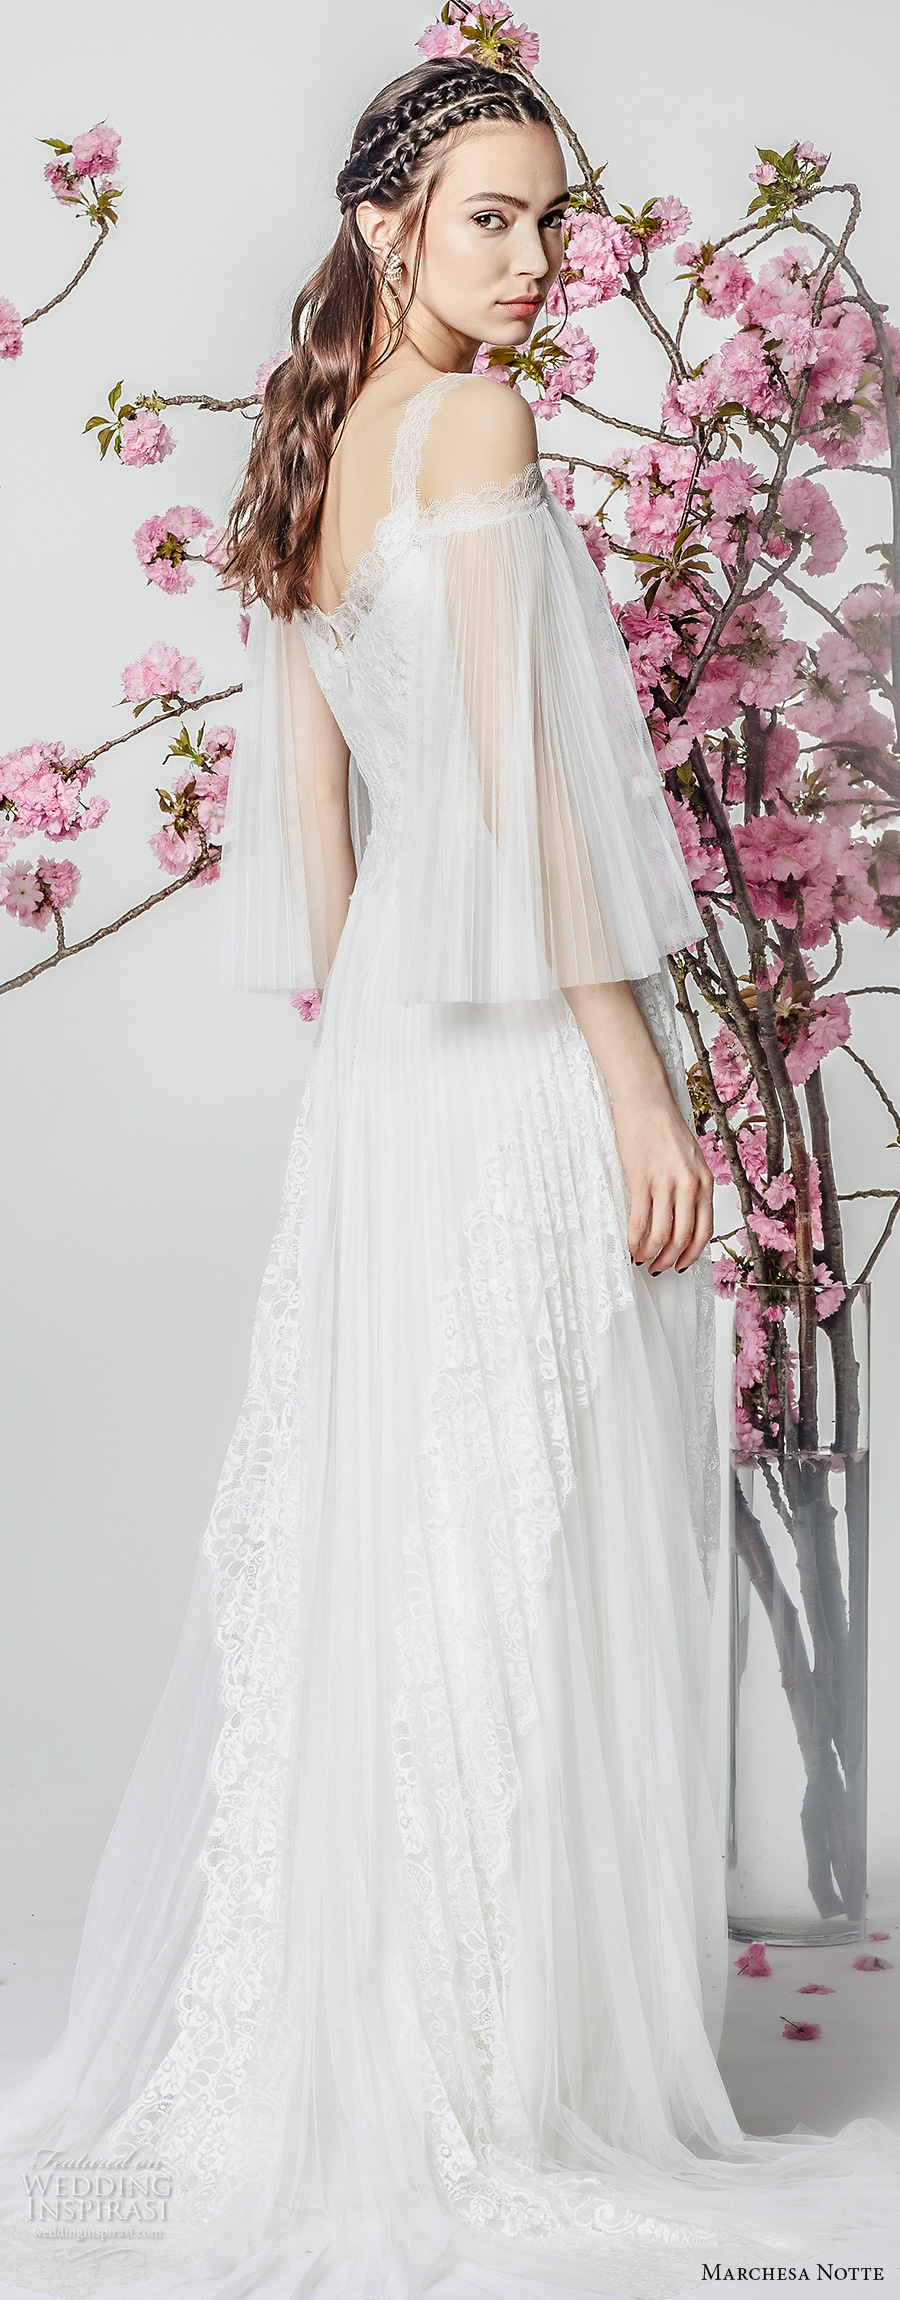 marchesa notte spring 2018 bridal three quarter bell sleeves cold shoulder v neck heavily embellished bodice grecian romantic modified a  line wedding dress sweep train (11) bv